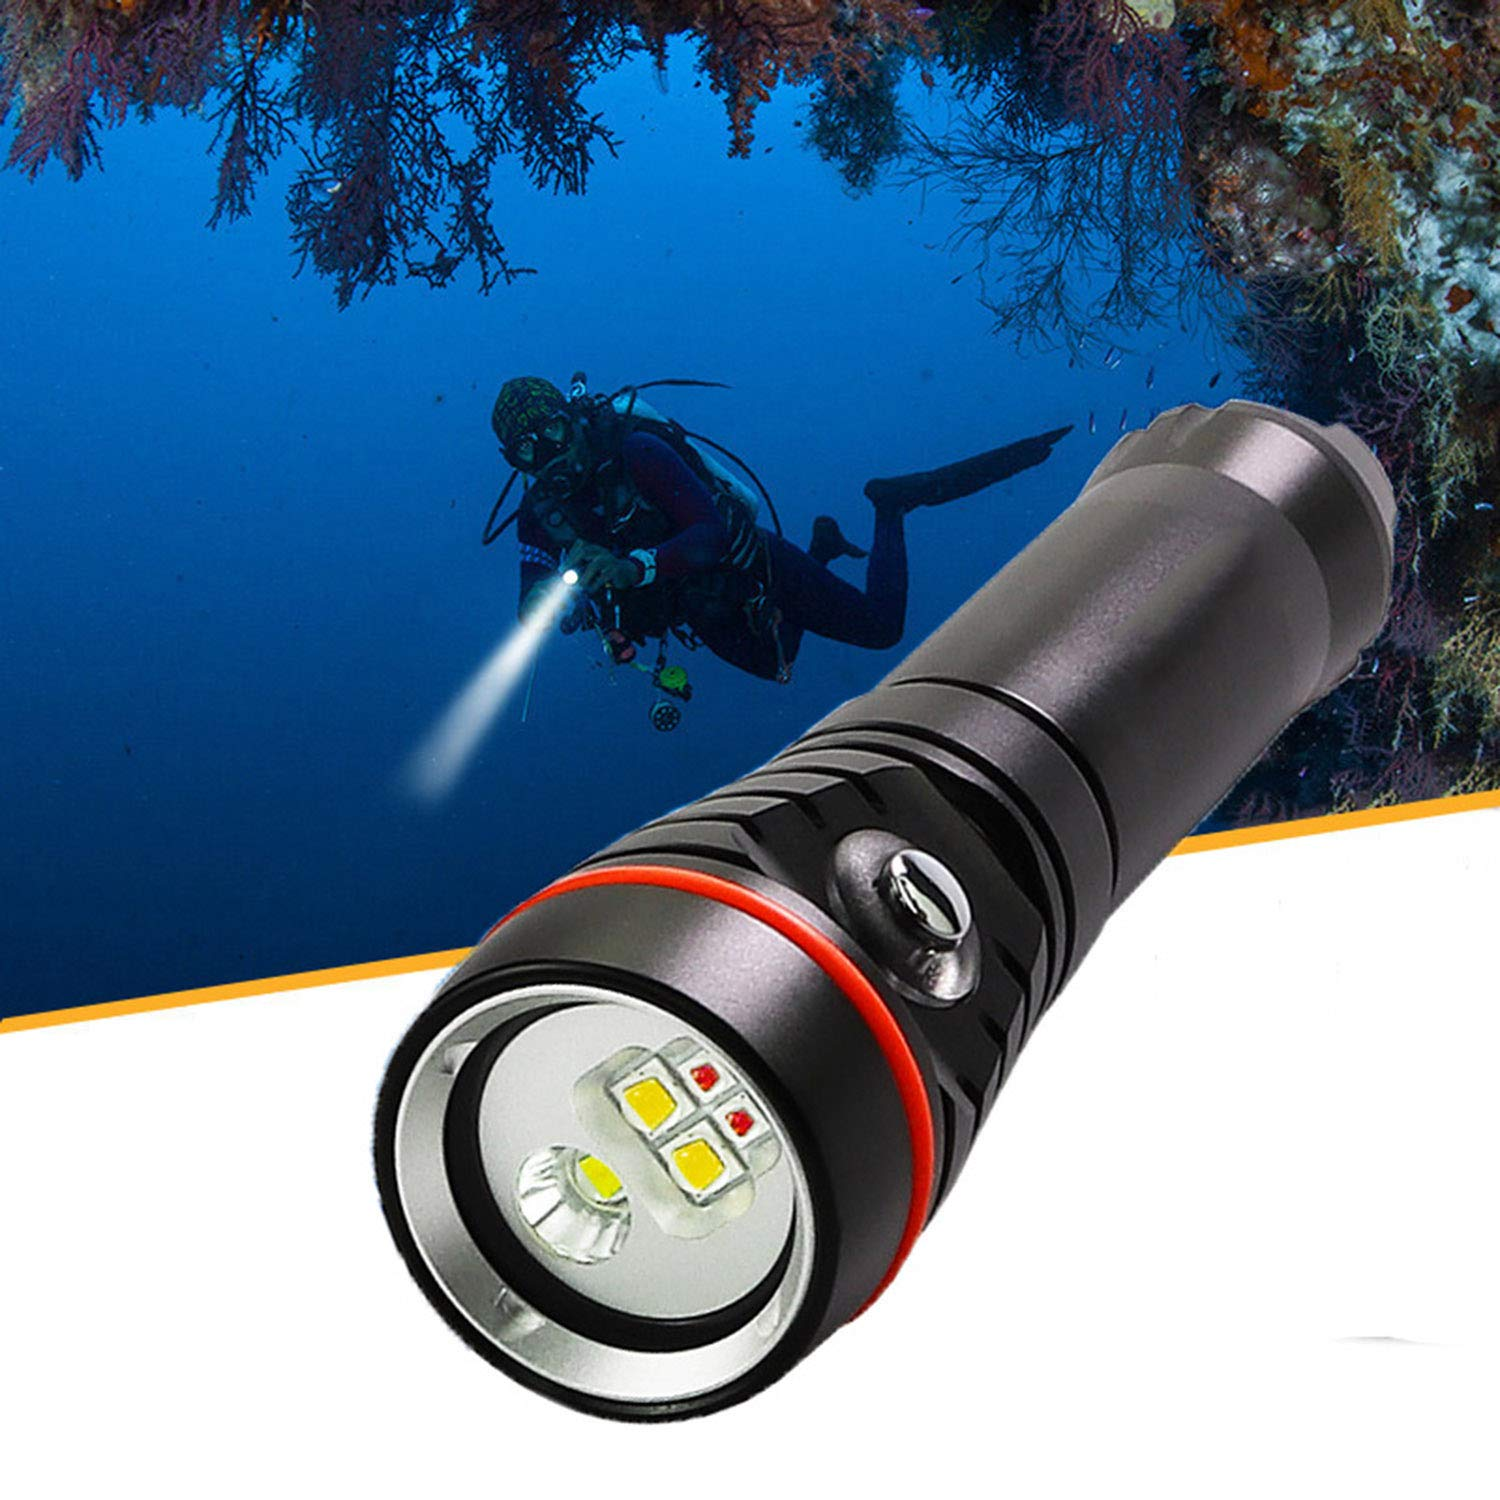 WSXX Diving Flashlight, Photography Fill Light, Underwater Lighting Glare, Wide-Angle LED, IPX-8 Waterproof, Diving Underwater 100M by WSXX